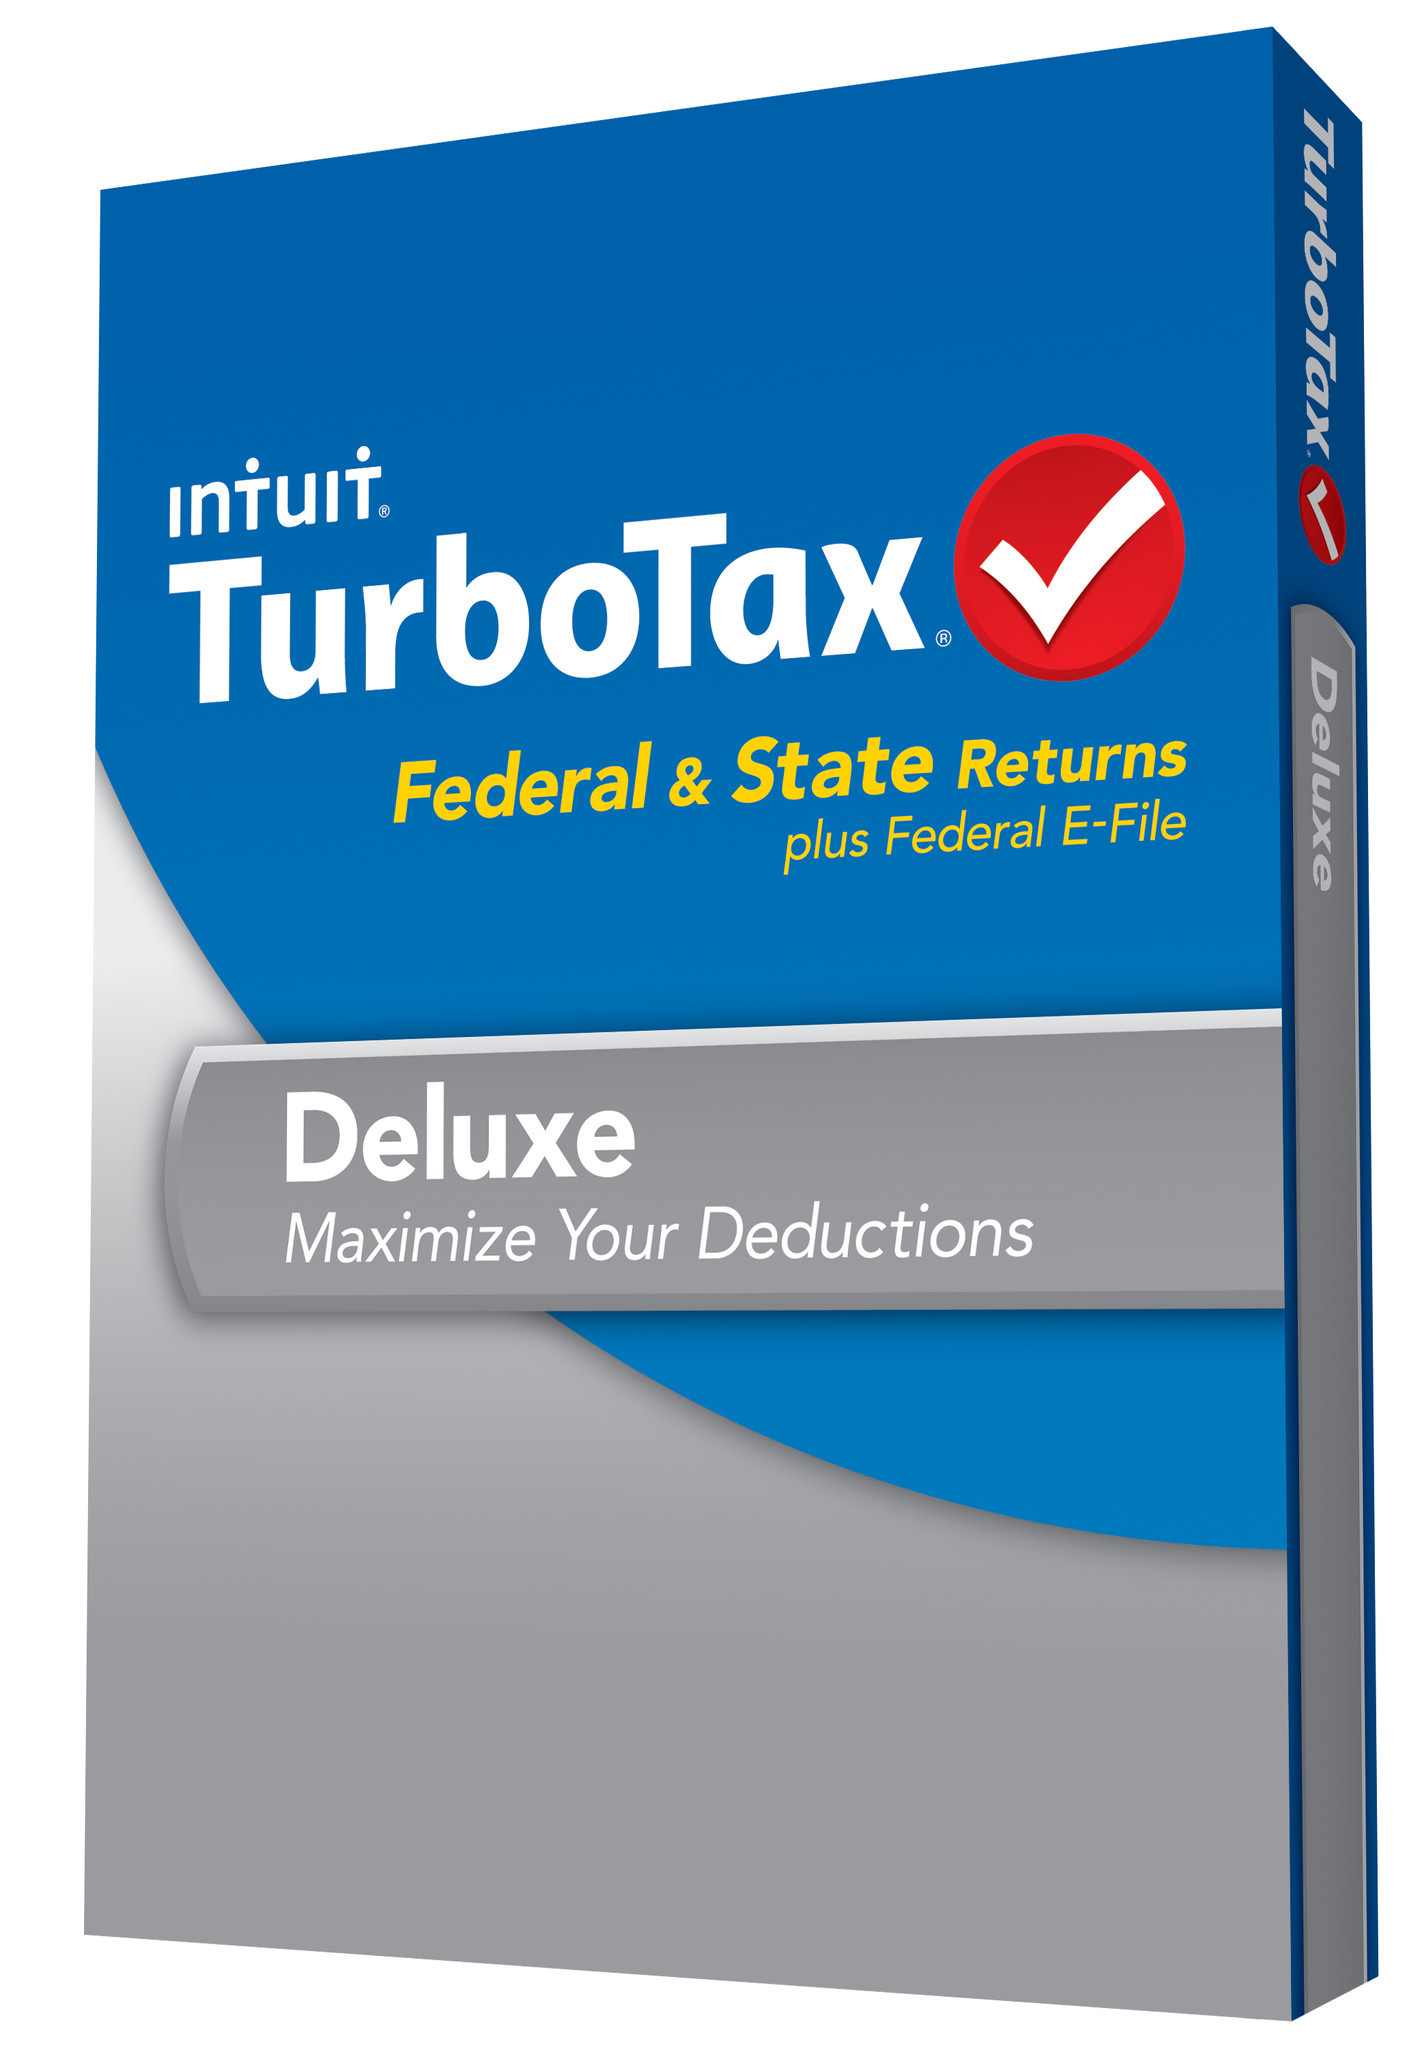 TurboTax resumes state tax return filing after fraud ...